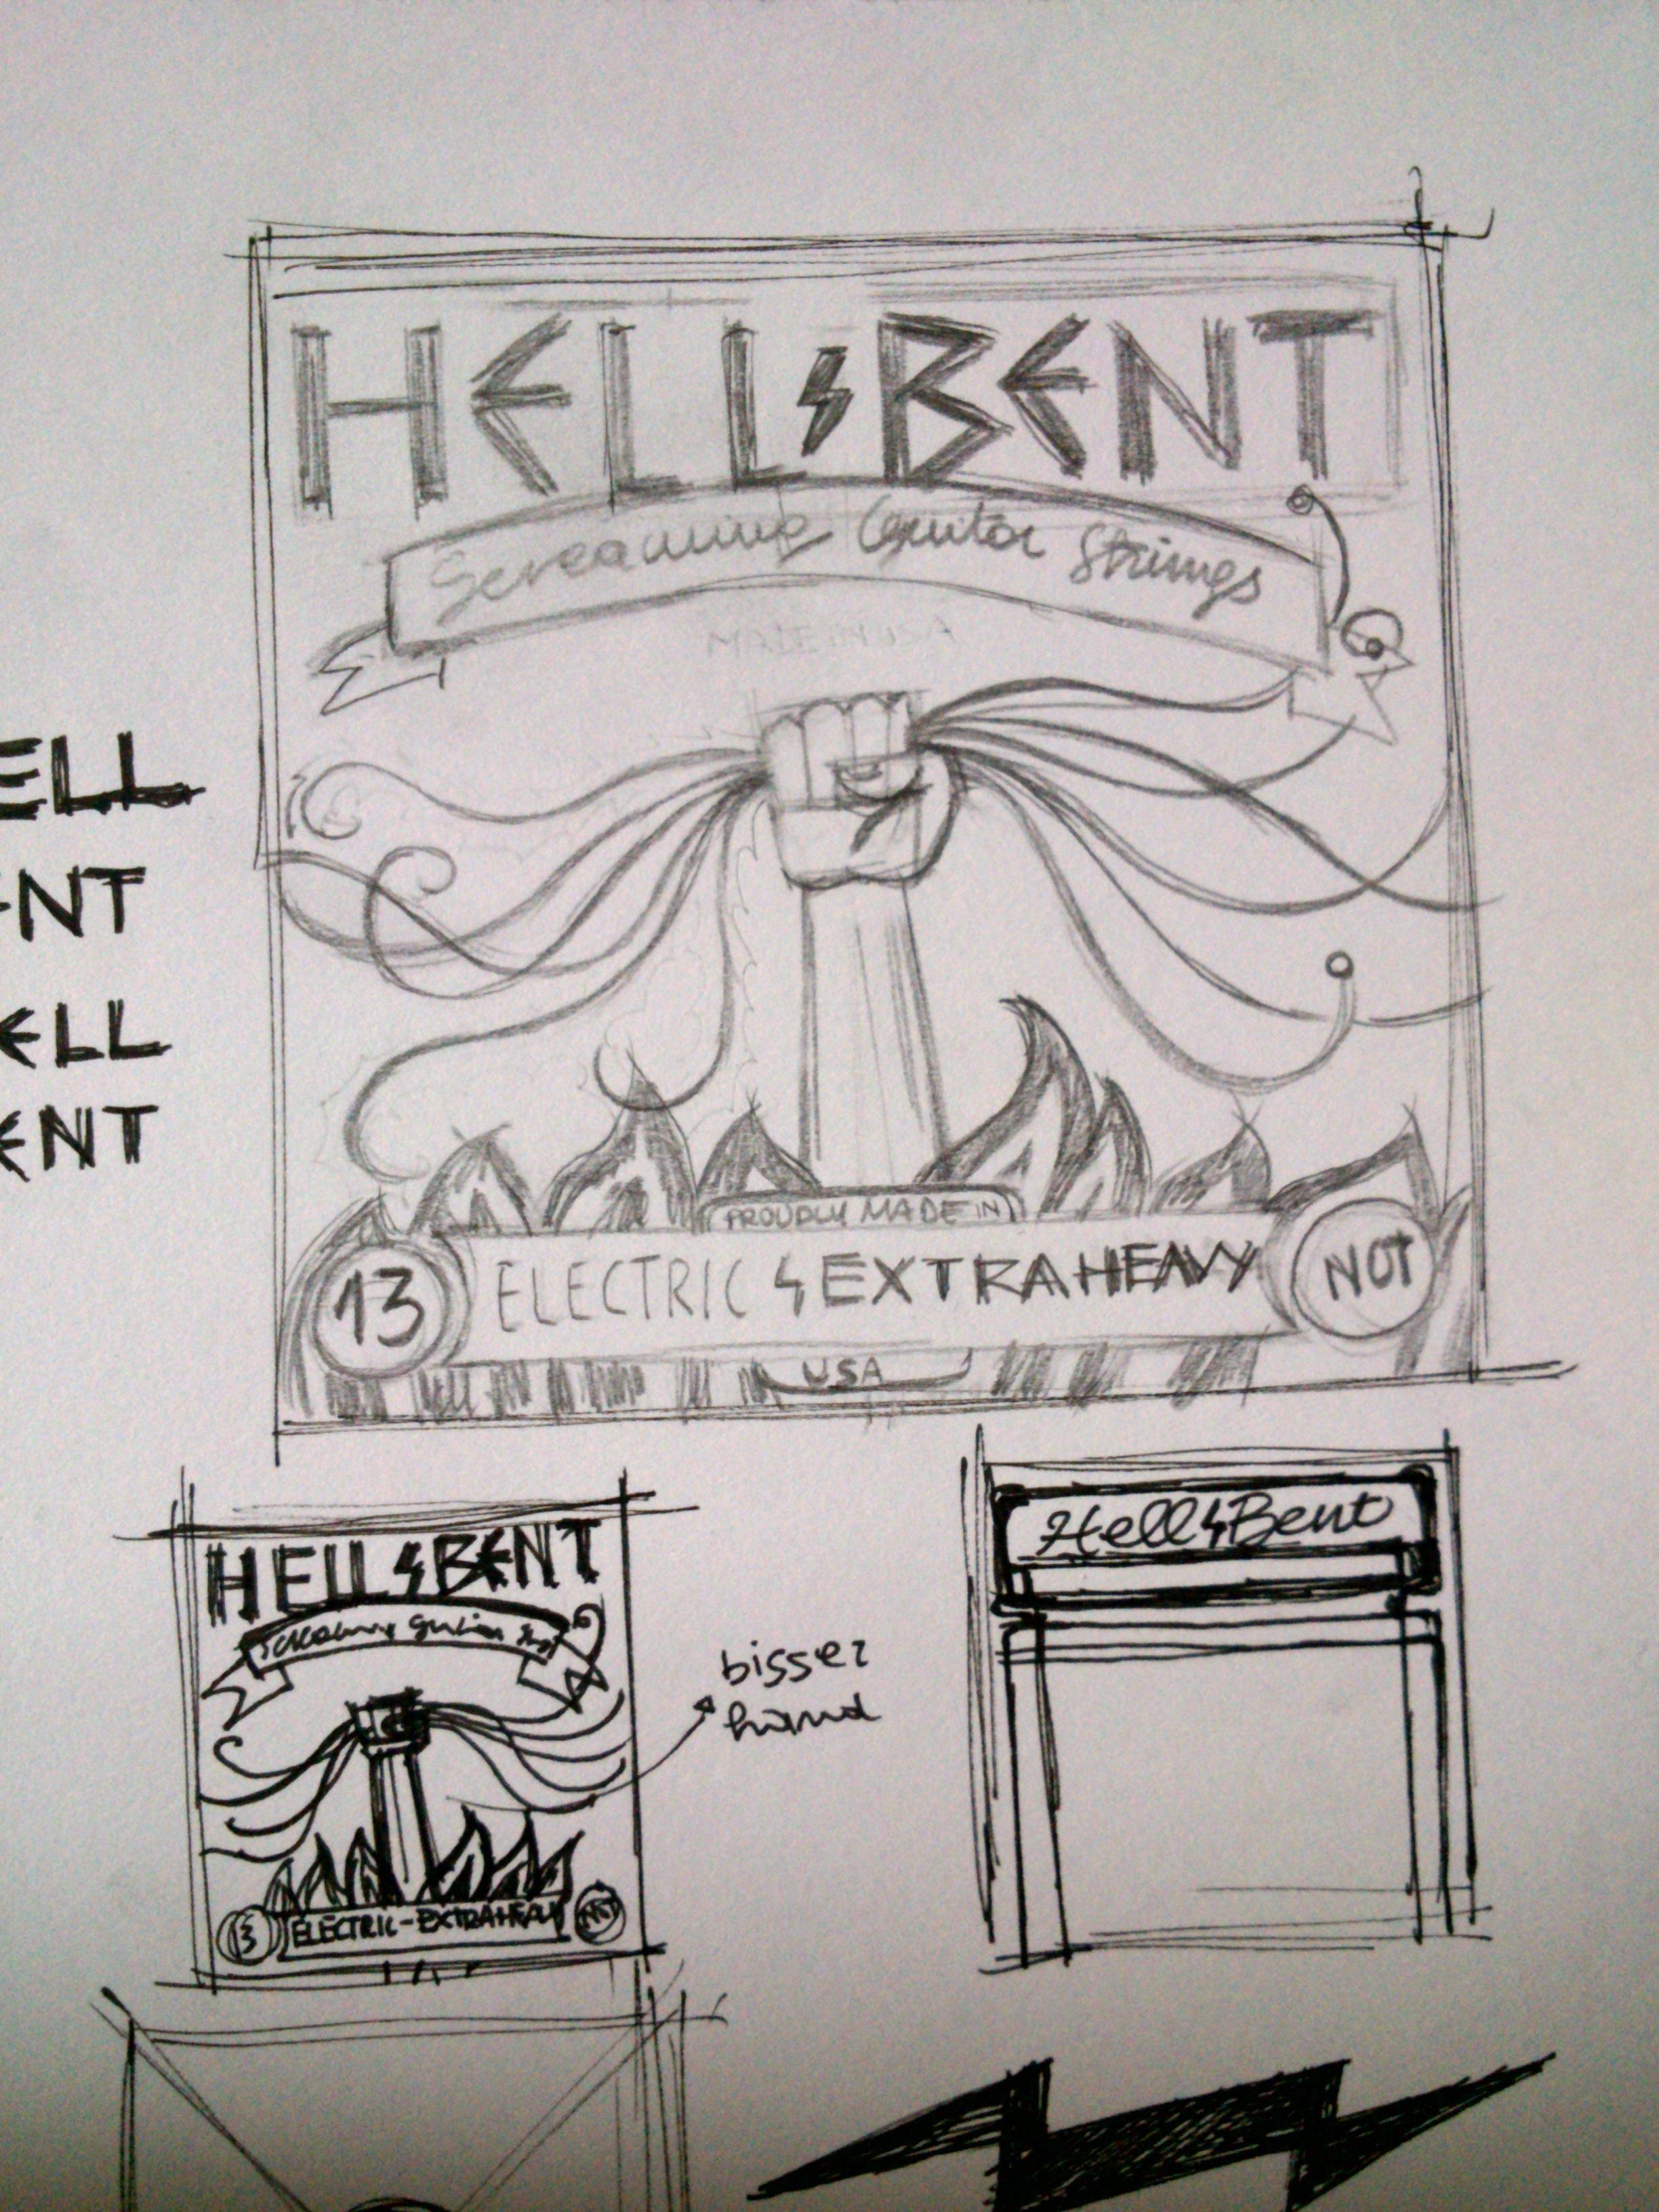 HELL BENT - GUITAR STRINGS - image 5 - student project